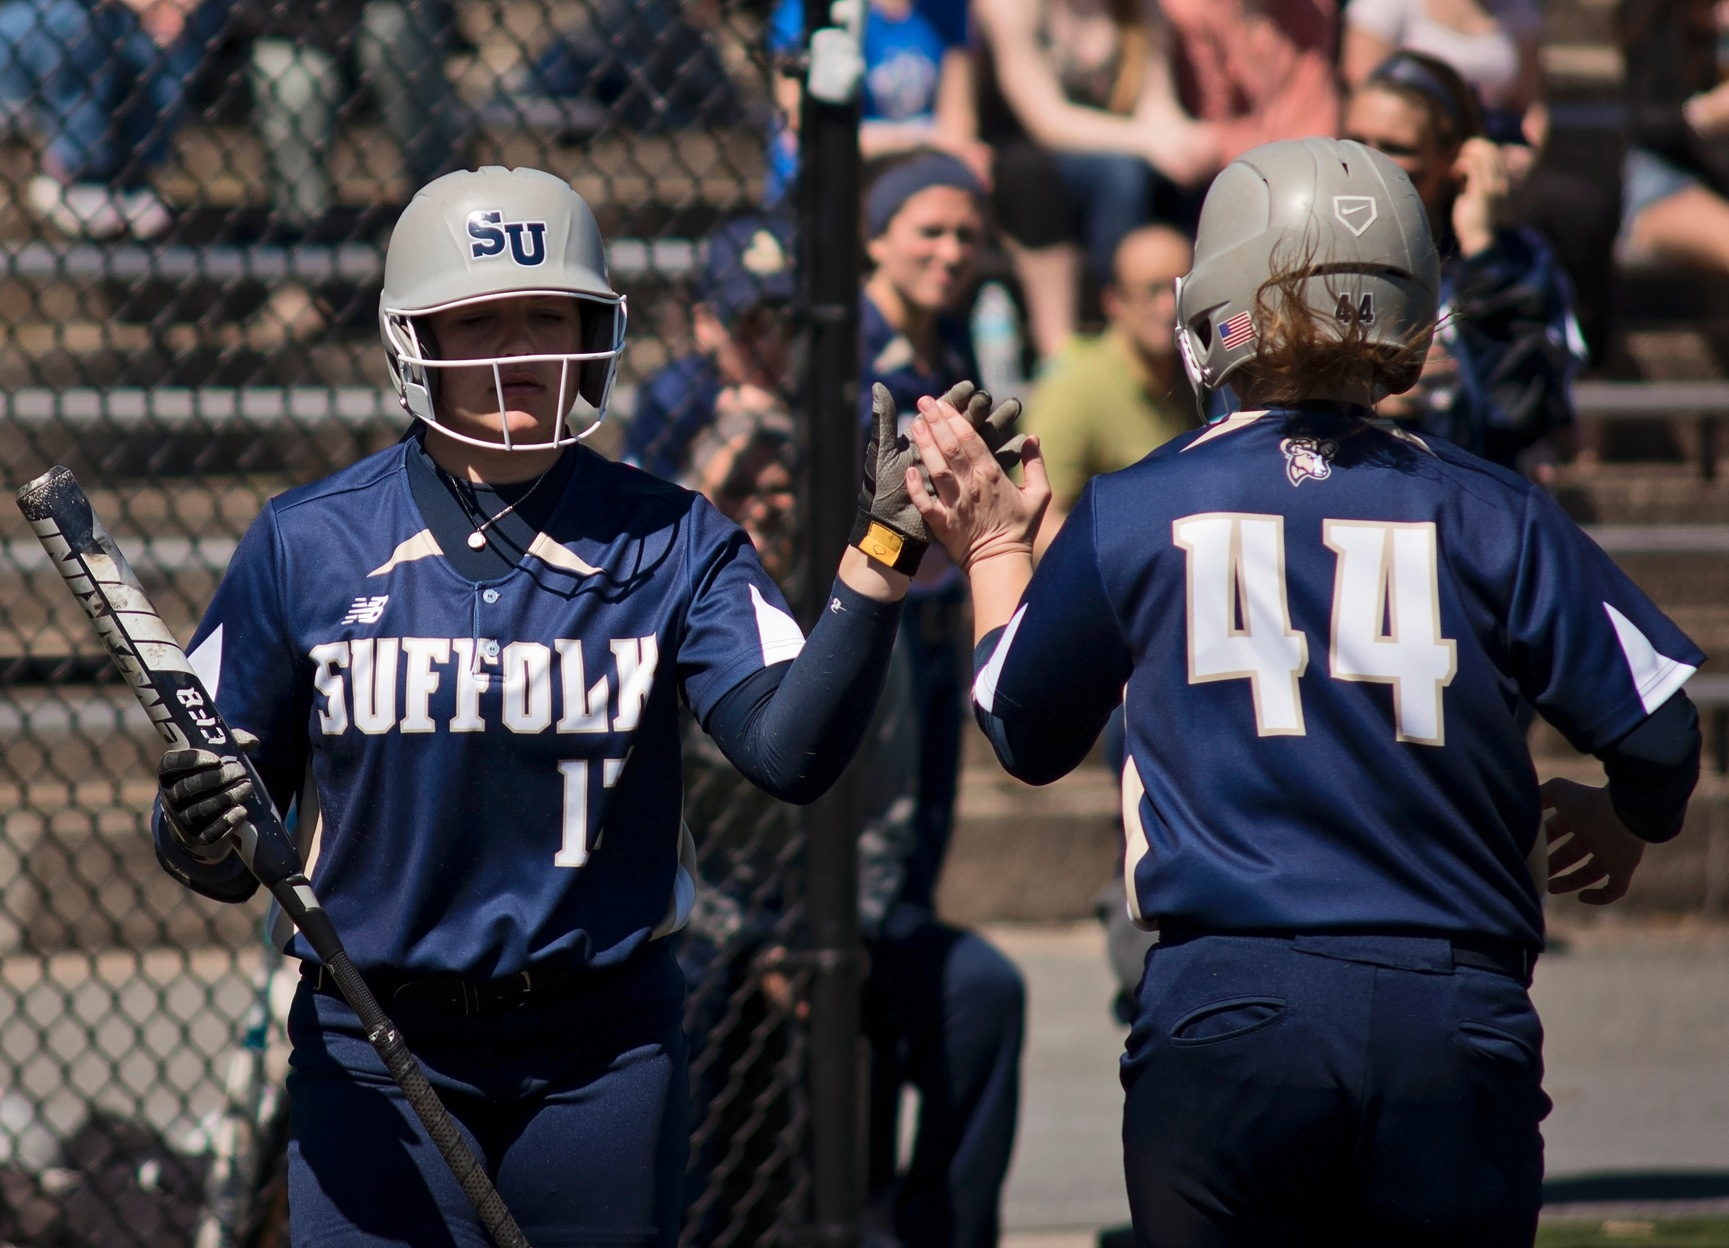 Softball Travels to Albertus Magnus Thursday